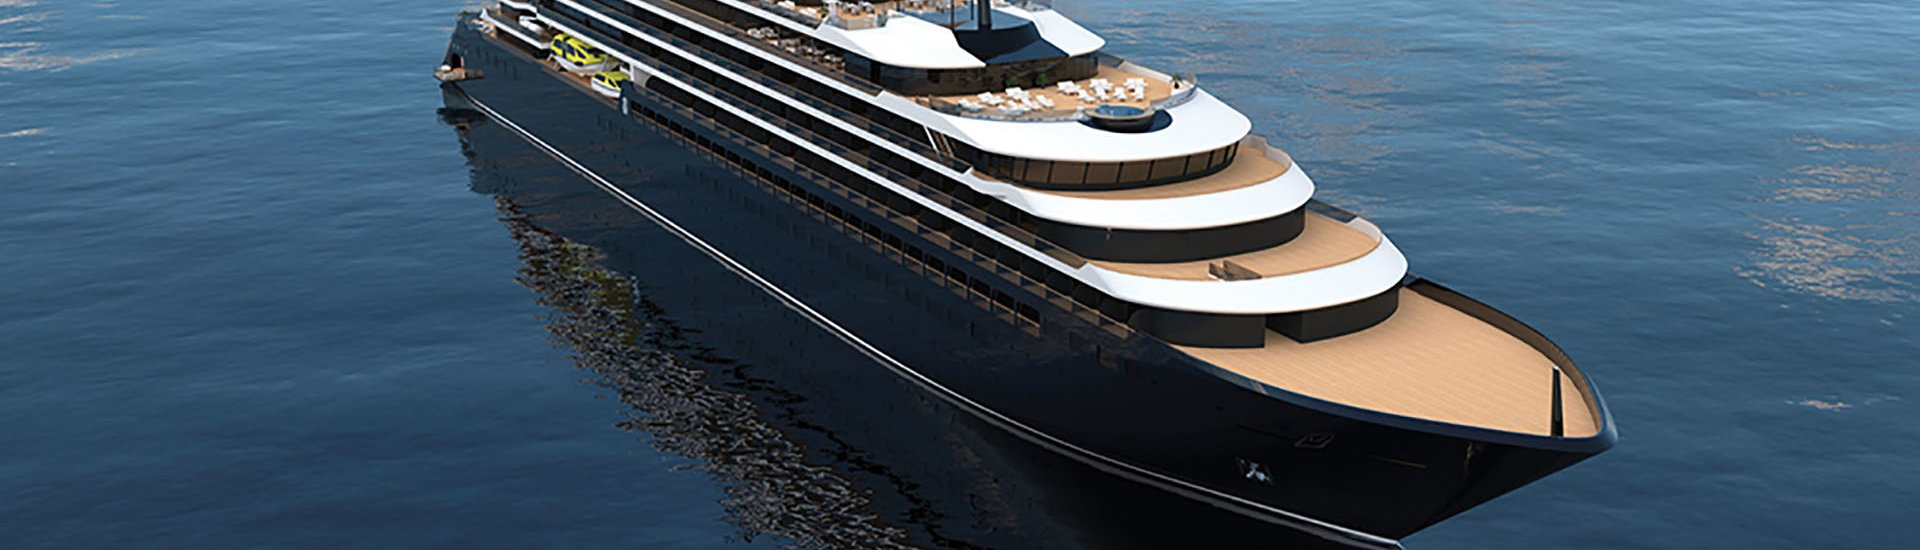 Reservations are now open for the inaugural season of The Ritz-Carlton Yacht Collection, set to take the seas in February 2020. (PRNewsfoto/Marriott International, Inc.)